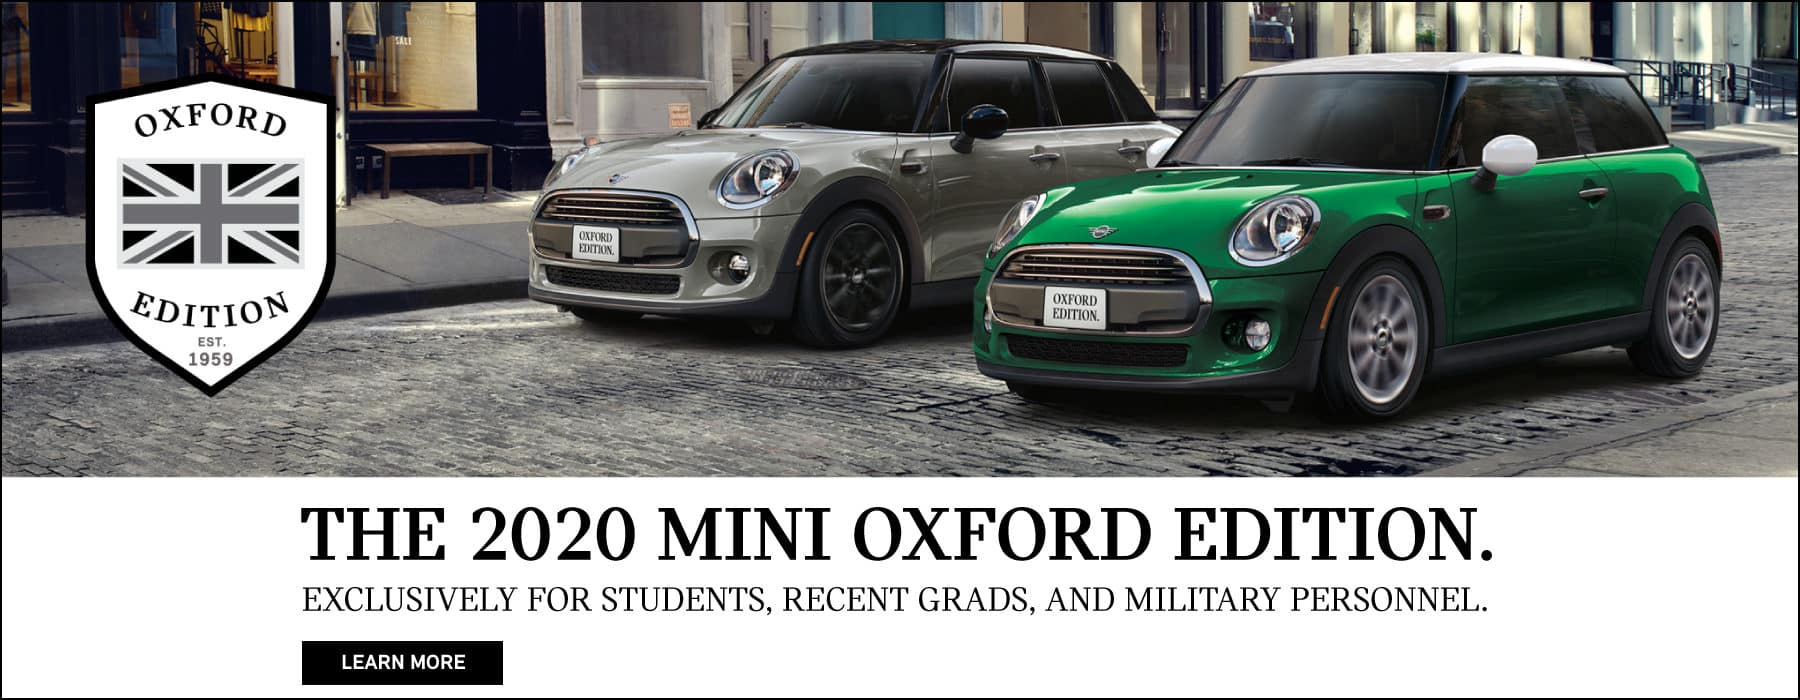 2020 MINI OXFORD EDITION. STARTING AT $19,750, EXCLUSIVELY FOR STUDENTS, RECENT GRADS, AND MILITARY PERSONNEL